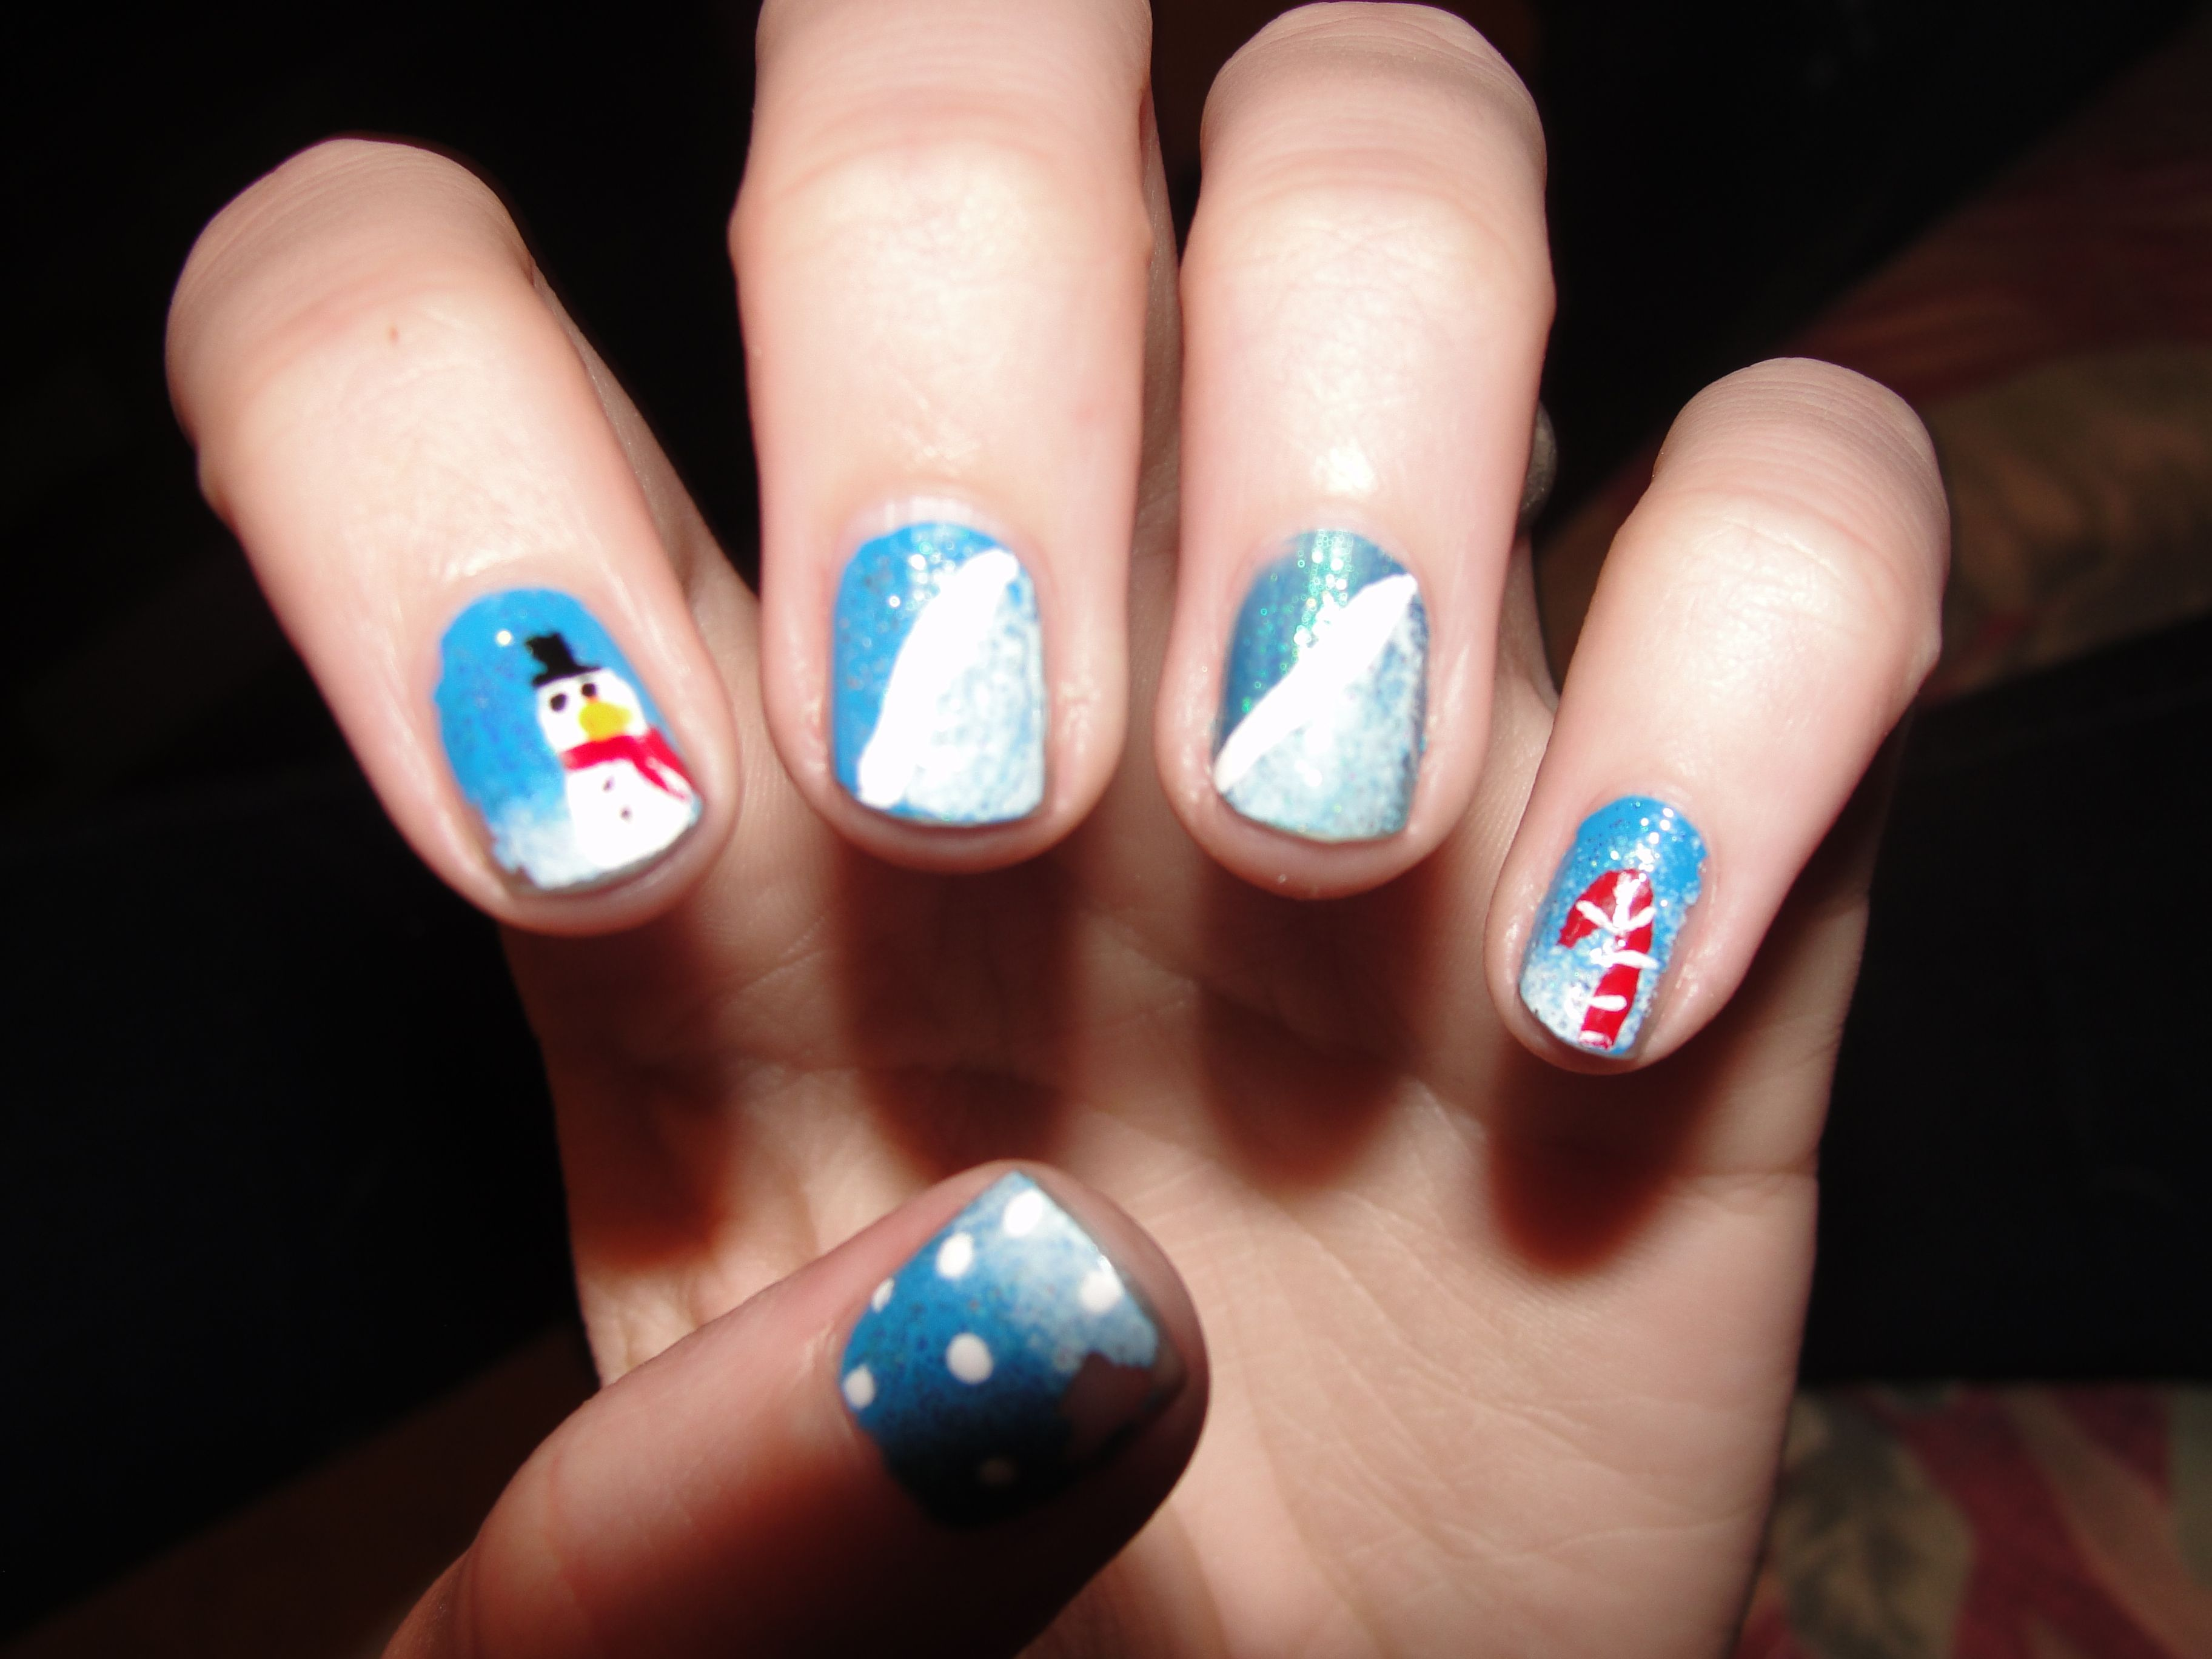 Winter Holiday Nails Done By My 12 Year Old Daughter With Images